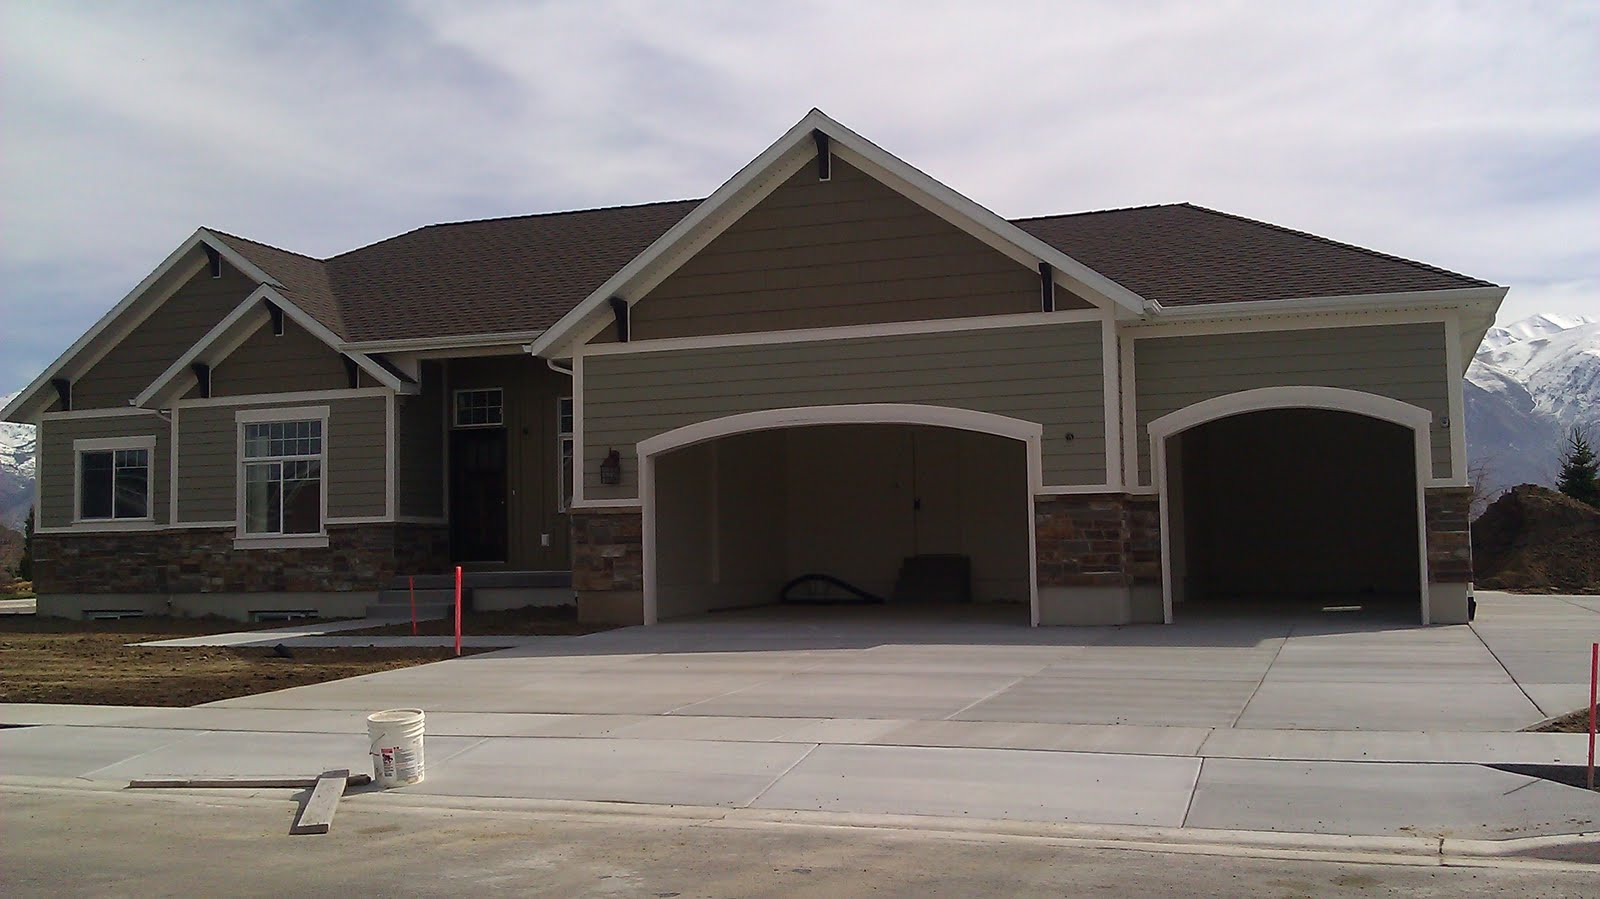 Stucco tech march 2011 - Exterior house colors brown ...